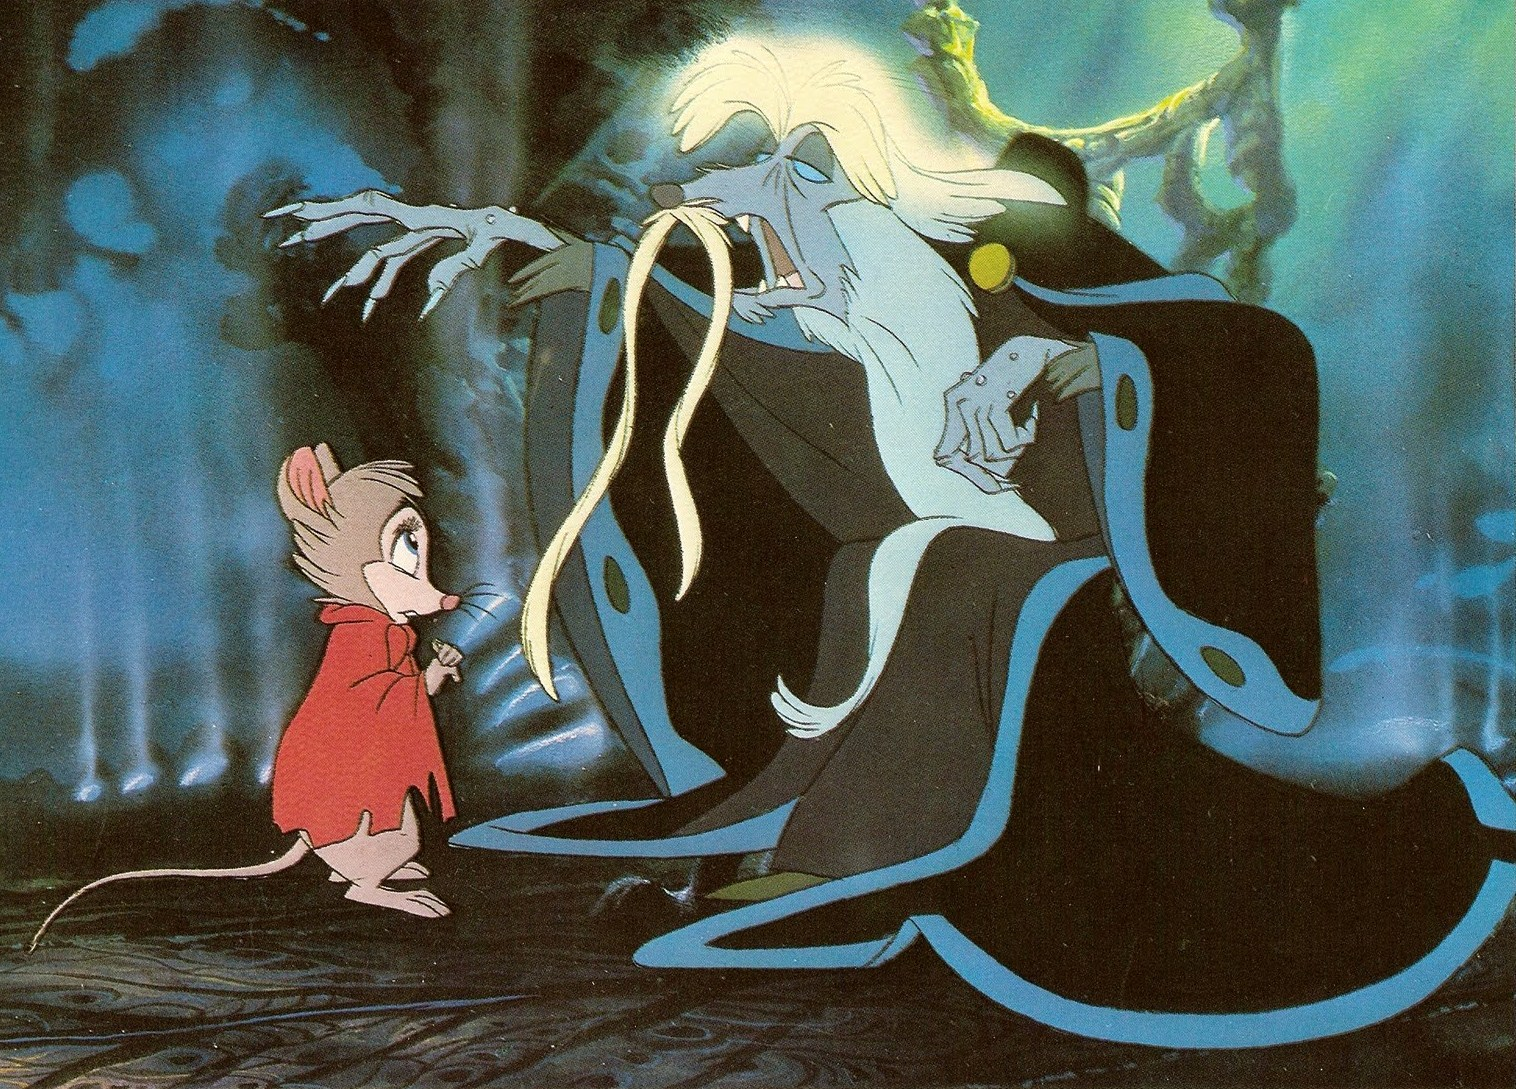 Mrs Brisby (voiced by Elizabeth Hartman) meets The Great Owl (voiced by John Carradine) in The Secret of N.I.M.H. (1982)